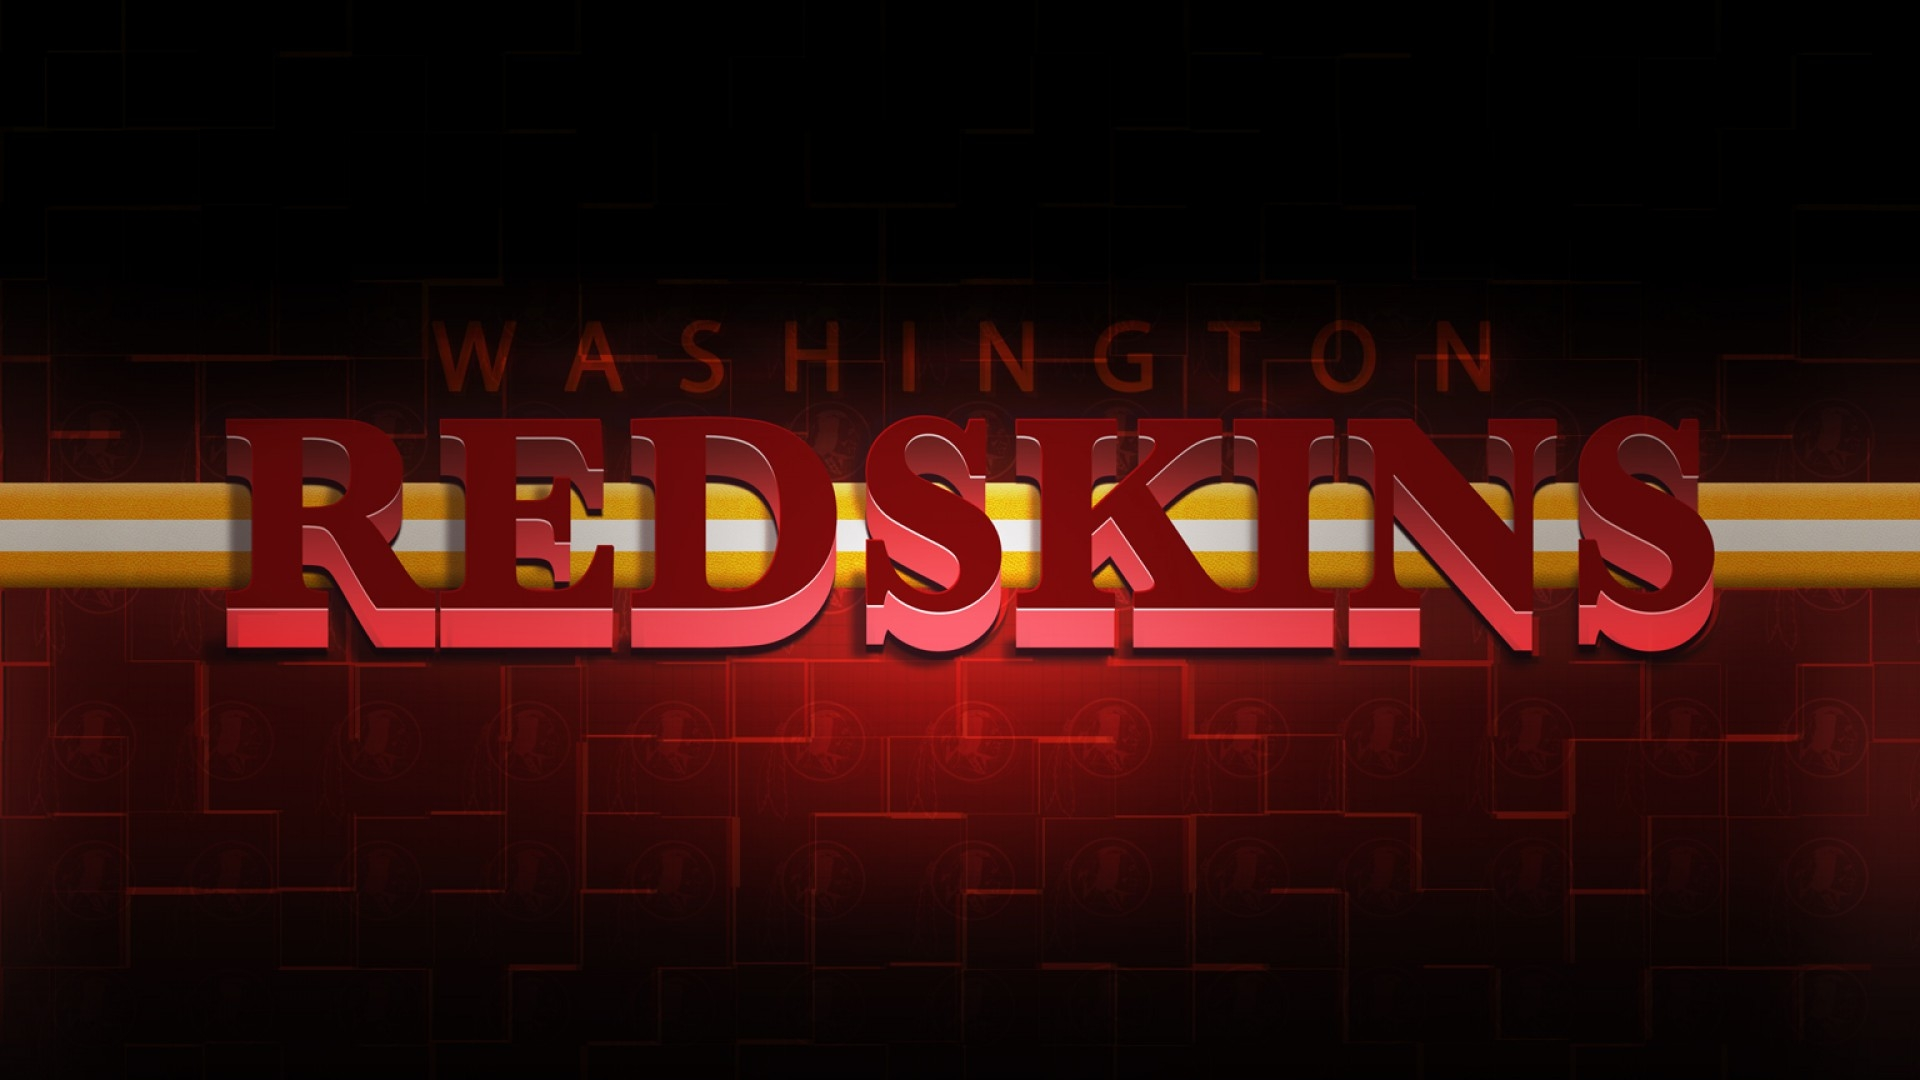 Desktop Redskins HD Wallpapers 1920x1080